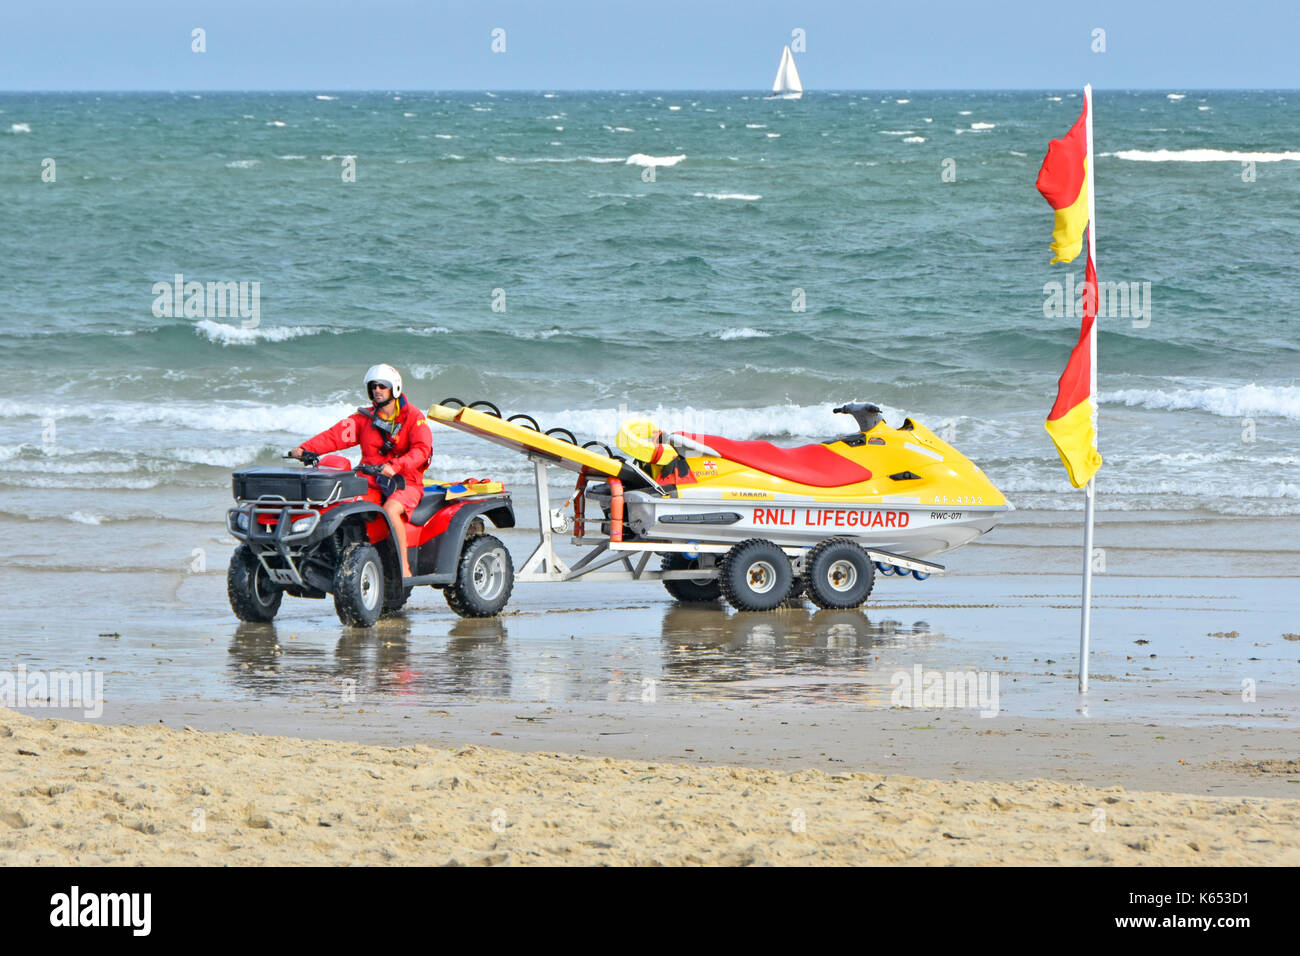 RNLI Lifeguard on the shoreline at Sandbanks beach driving a ATV quad bike and Yamaha jet ski PWC rescue craft with choppy sea & sailing boat distant - Stock Image